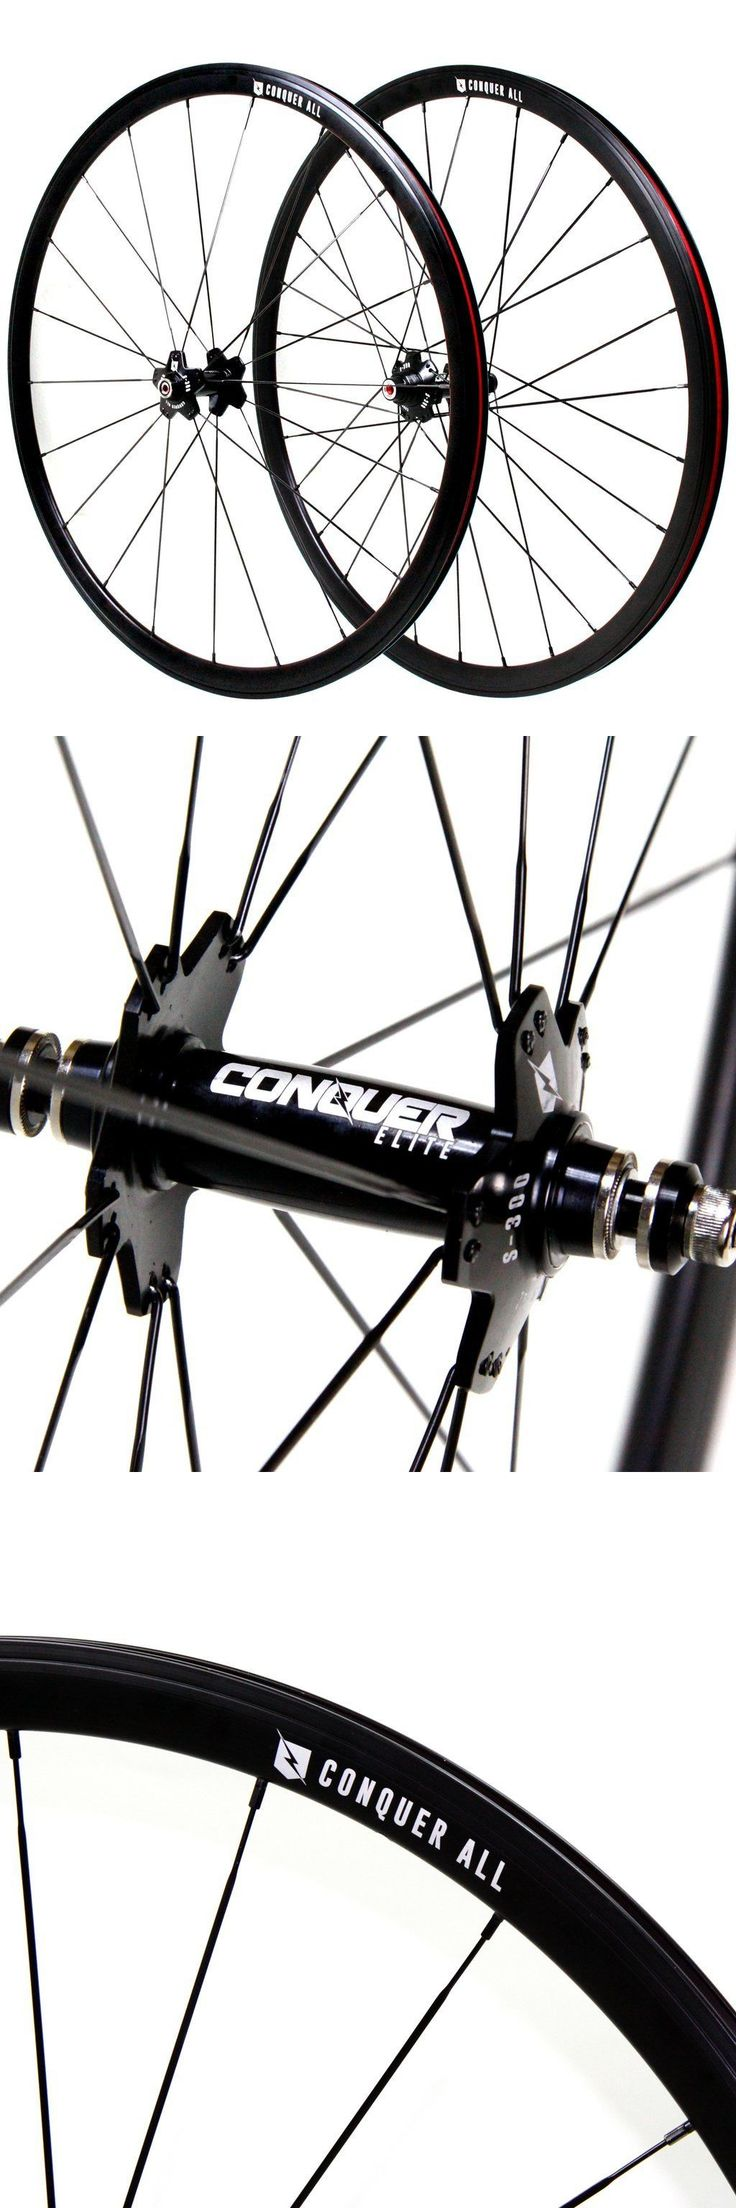 Other Bike Components and Parts 57267: Conquer S-300 Fixed Gear Wheelset Drilling: Front 20 Rear 28 -> BUY IT NOW ONLY: $179.99 on eBay!